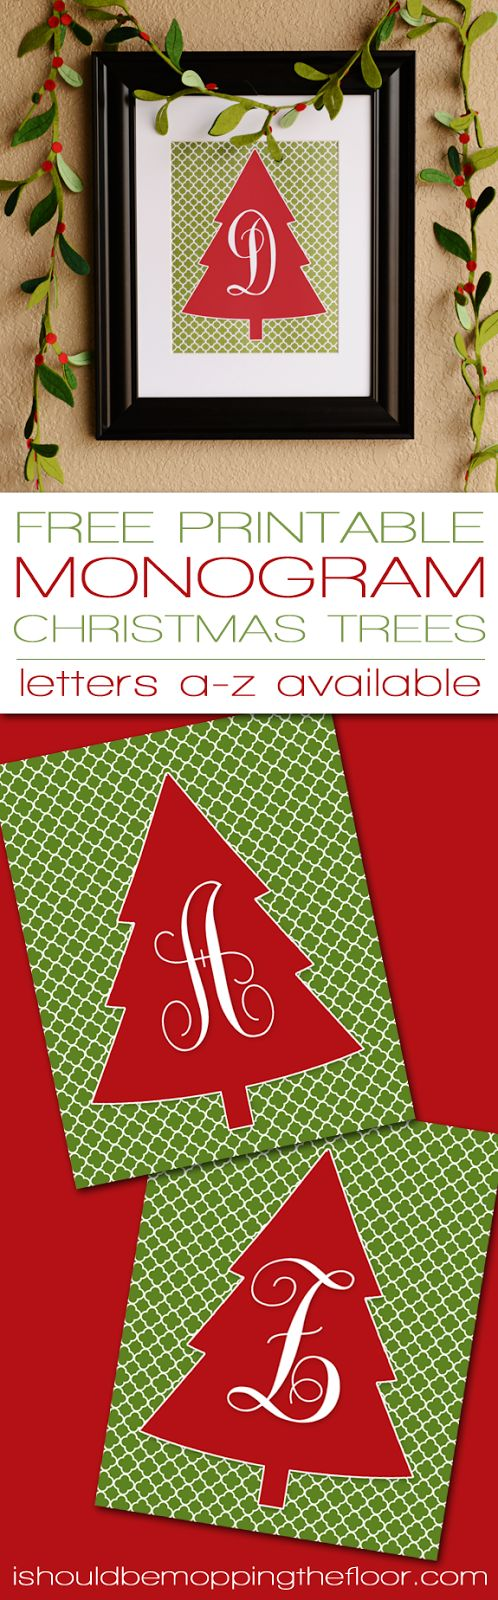 Free Monogram Christmas Tree Printable | Letters A-Z available | Instant Downloads